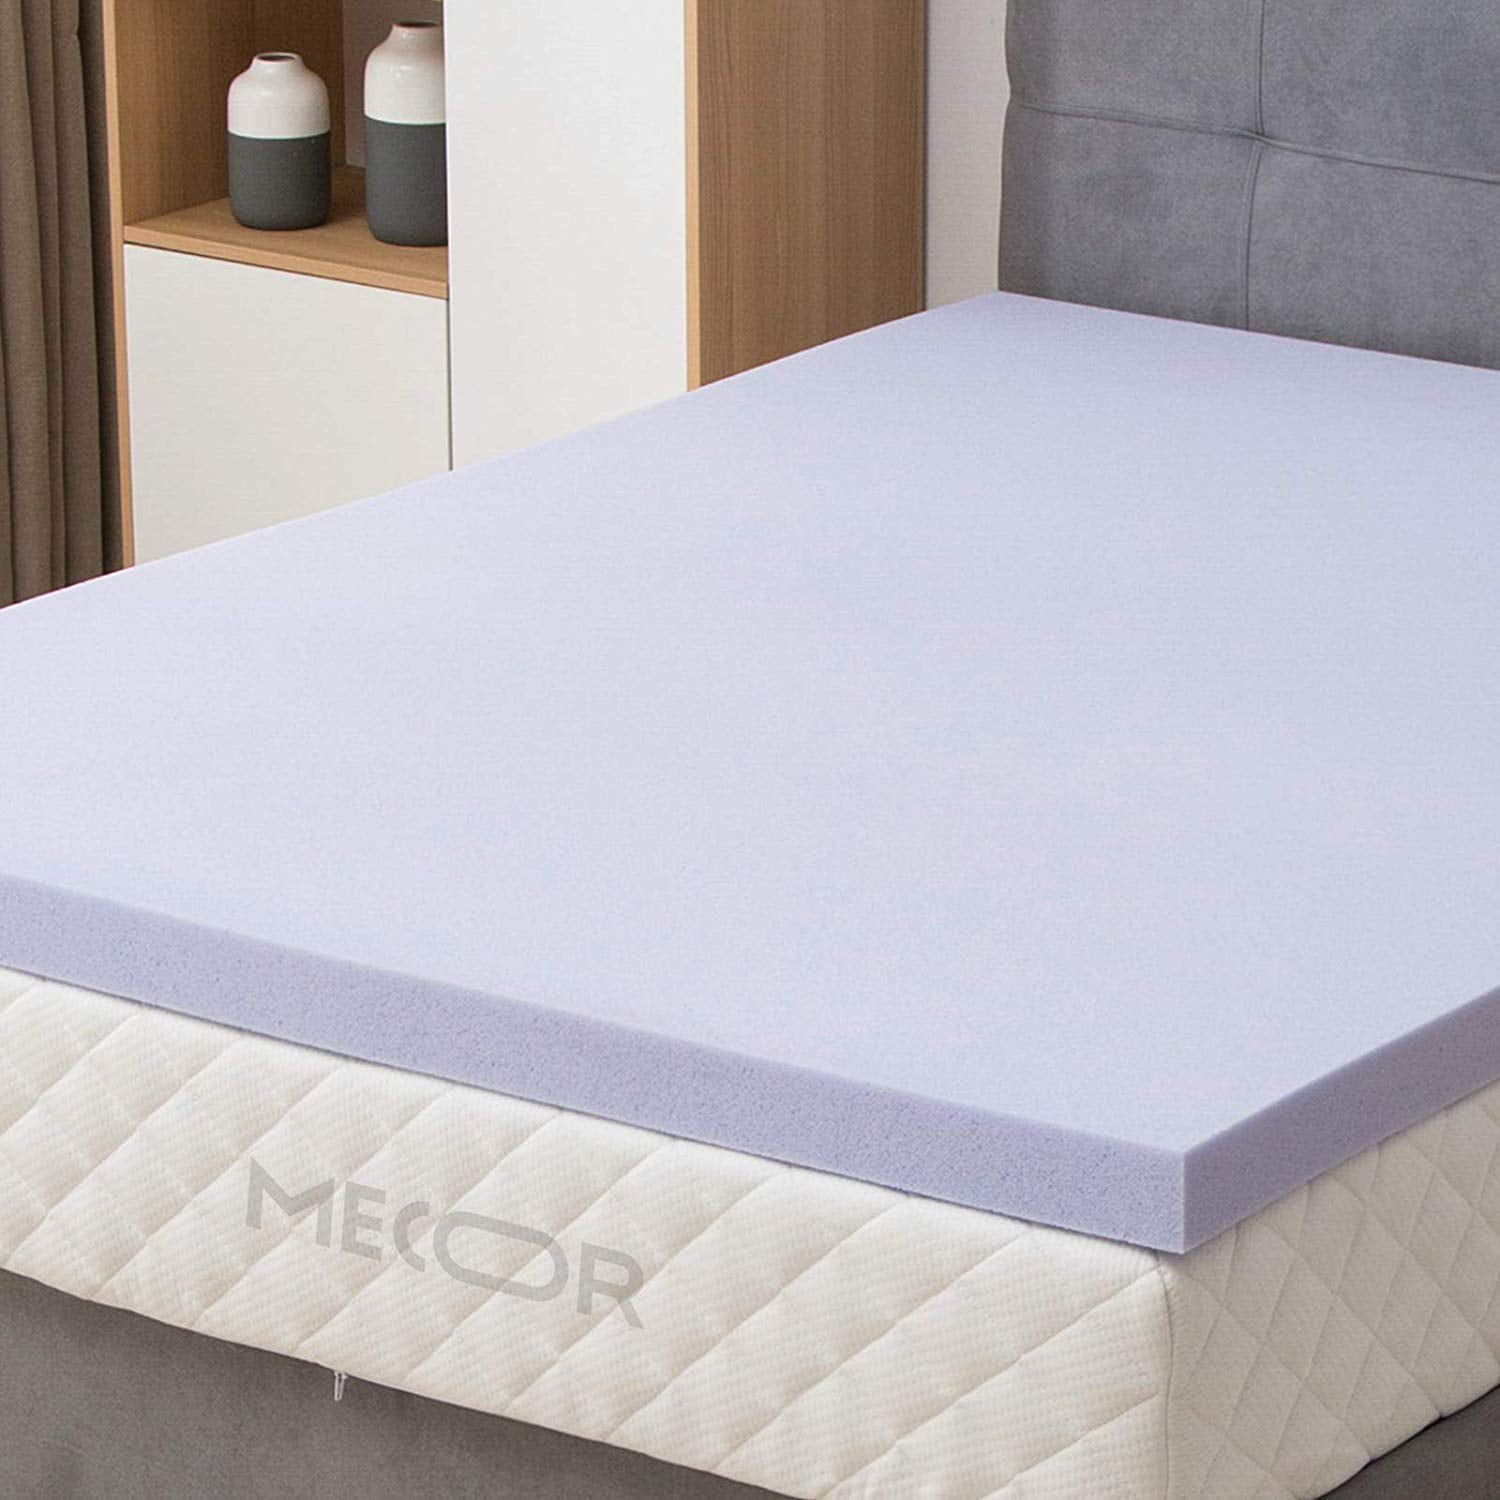 "Mecor 4"" 4 inch Queen Size Gel Infused Memory Foam ..."